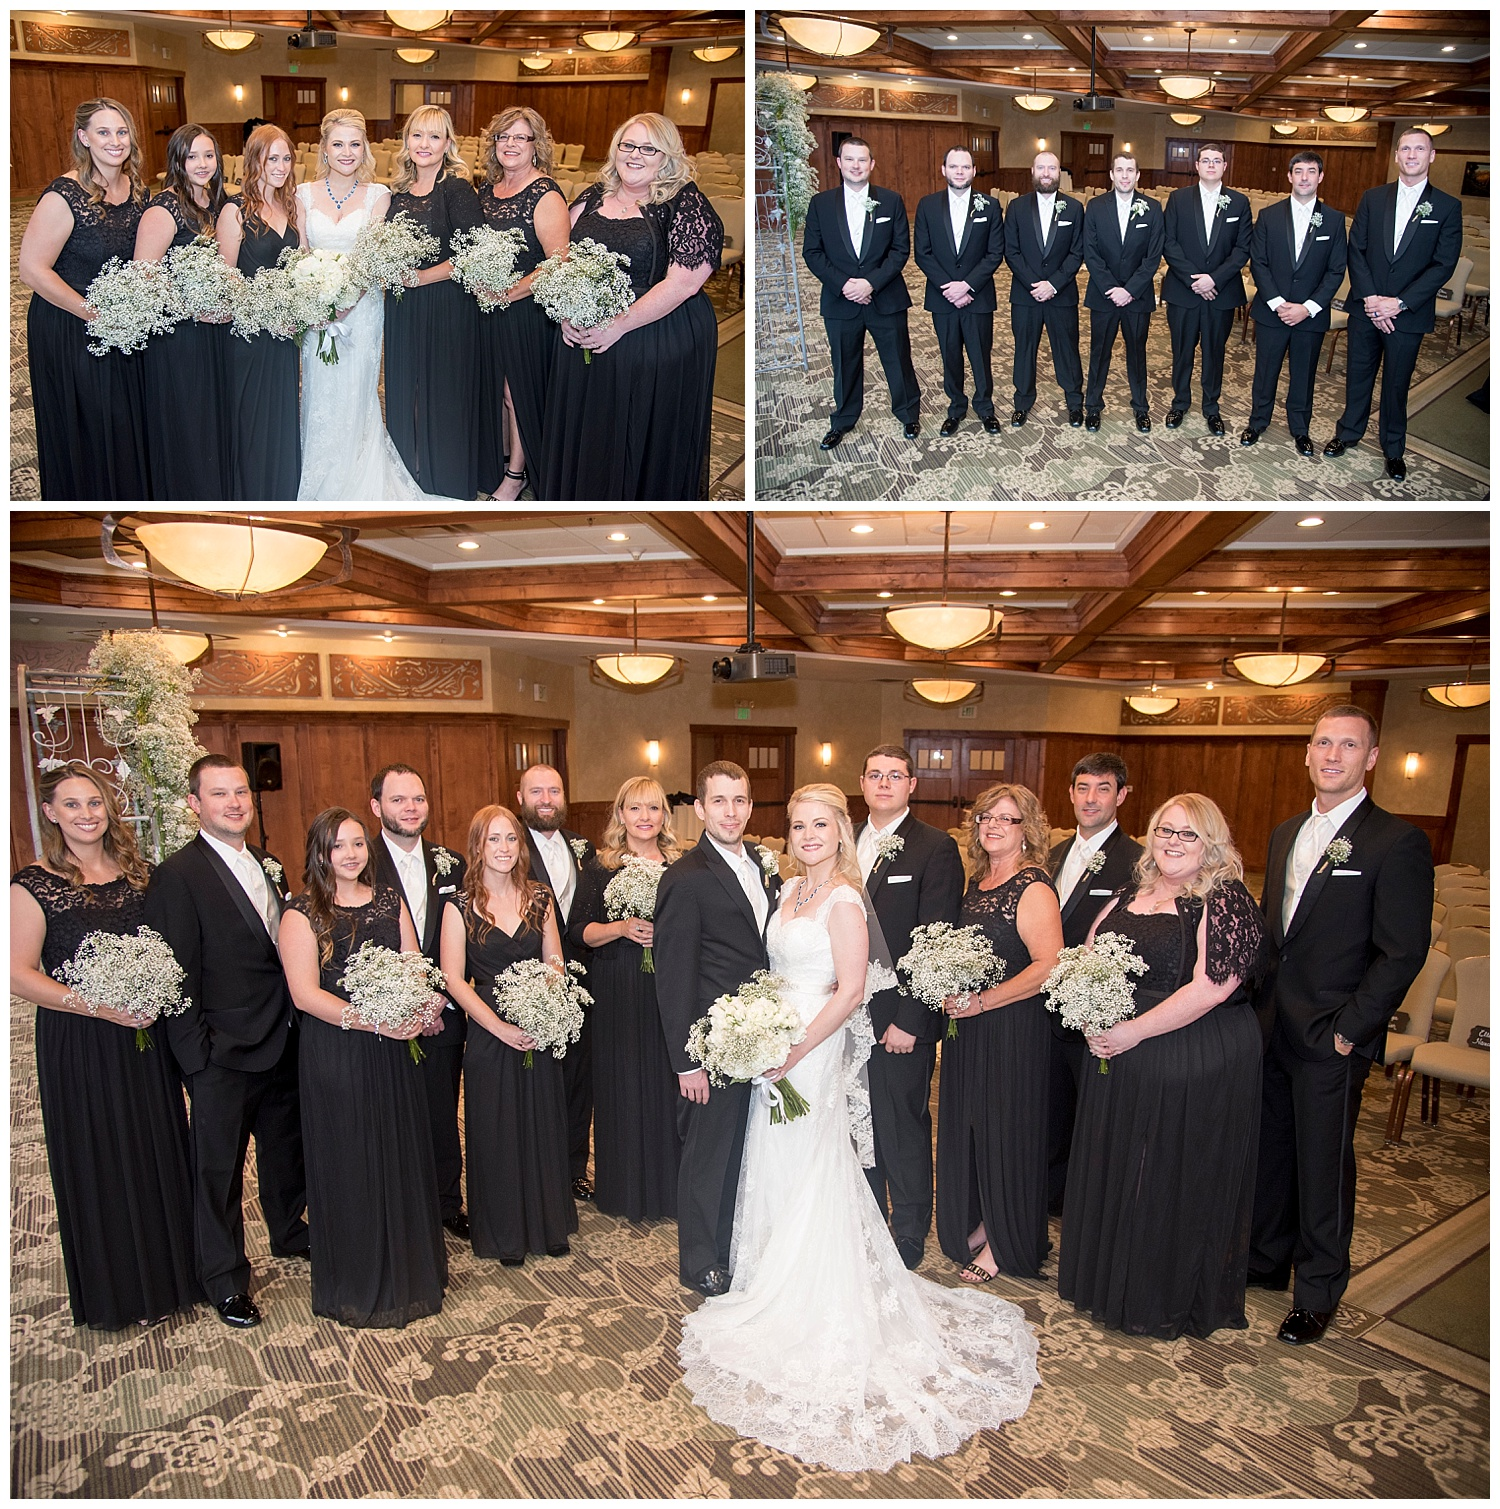 Classy Bridal Party Formals | Chris & Destiny's Destination Wedding | Breckenridge Wedding Photographer | Colorado Farm Wedding Photographer | Apollo Fields Wedding Photojournalism